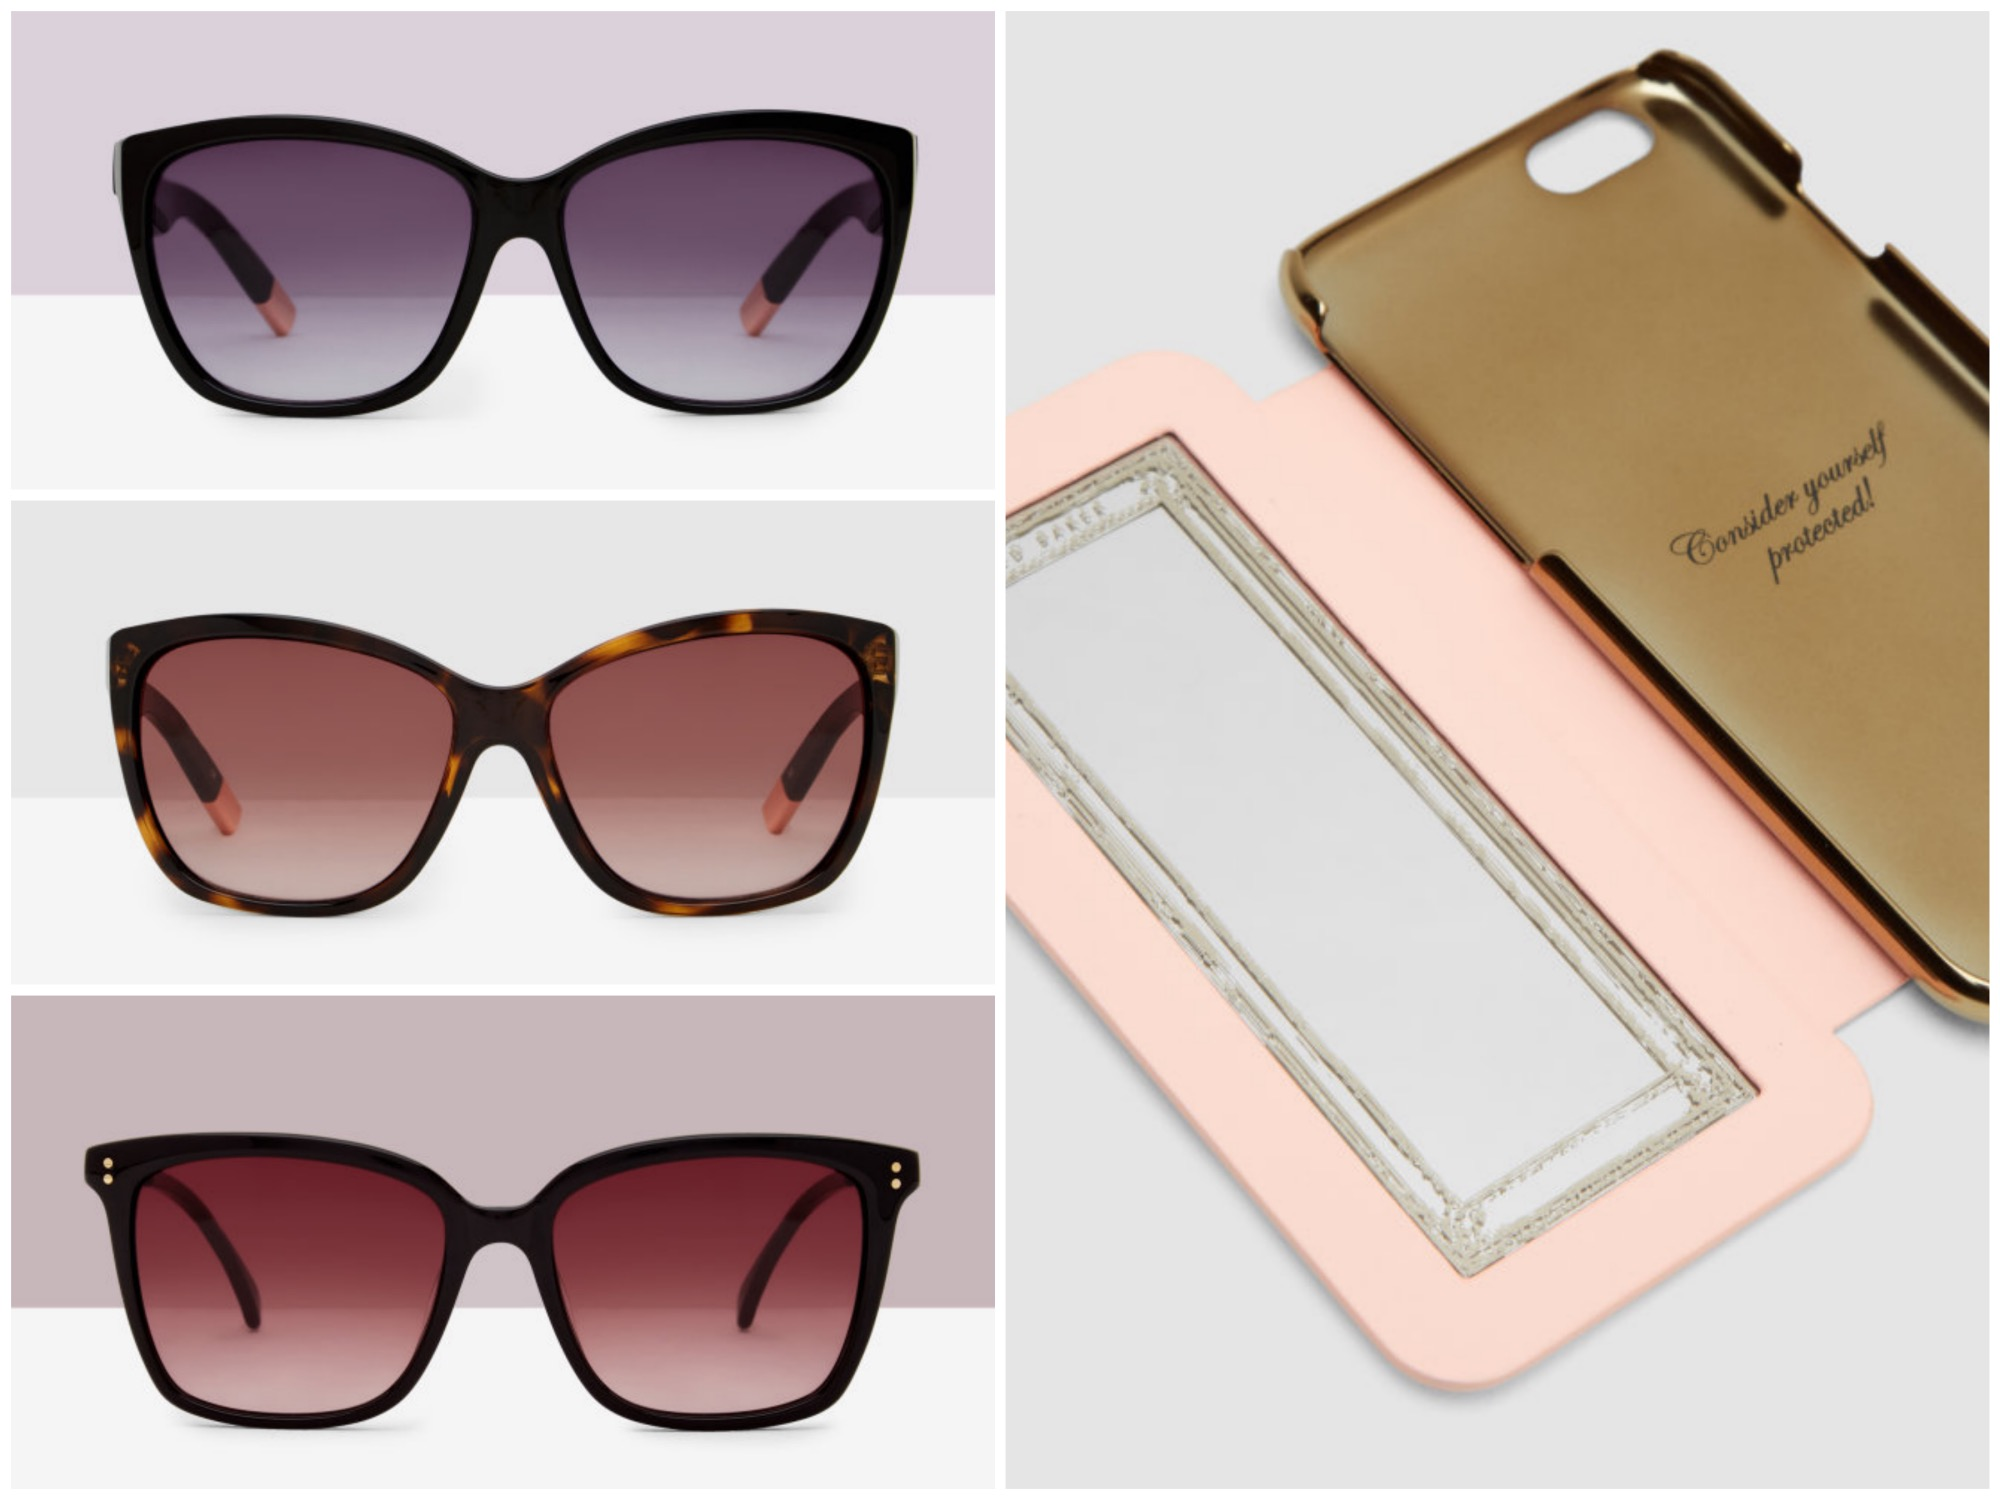 Sunglasses & iPhone case - Ted Baker